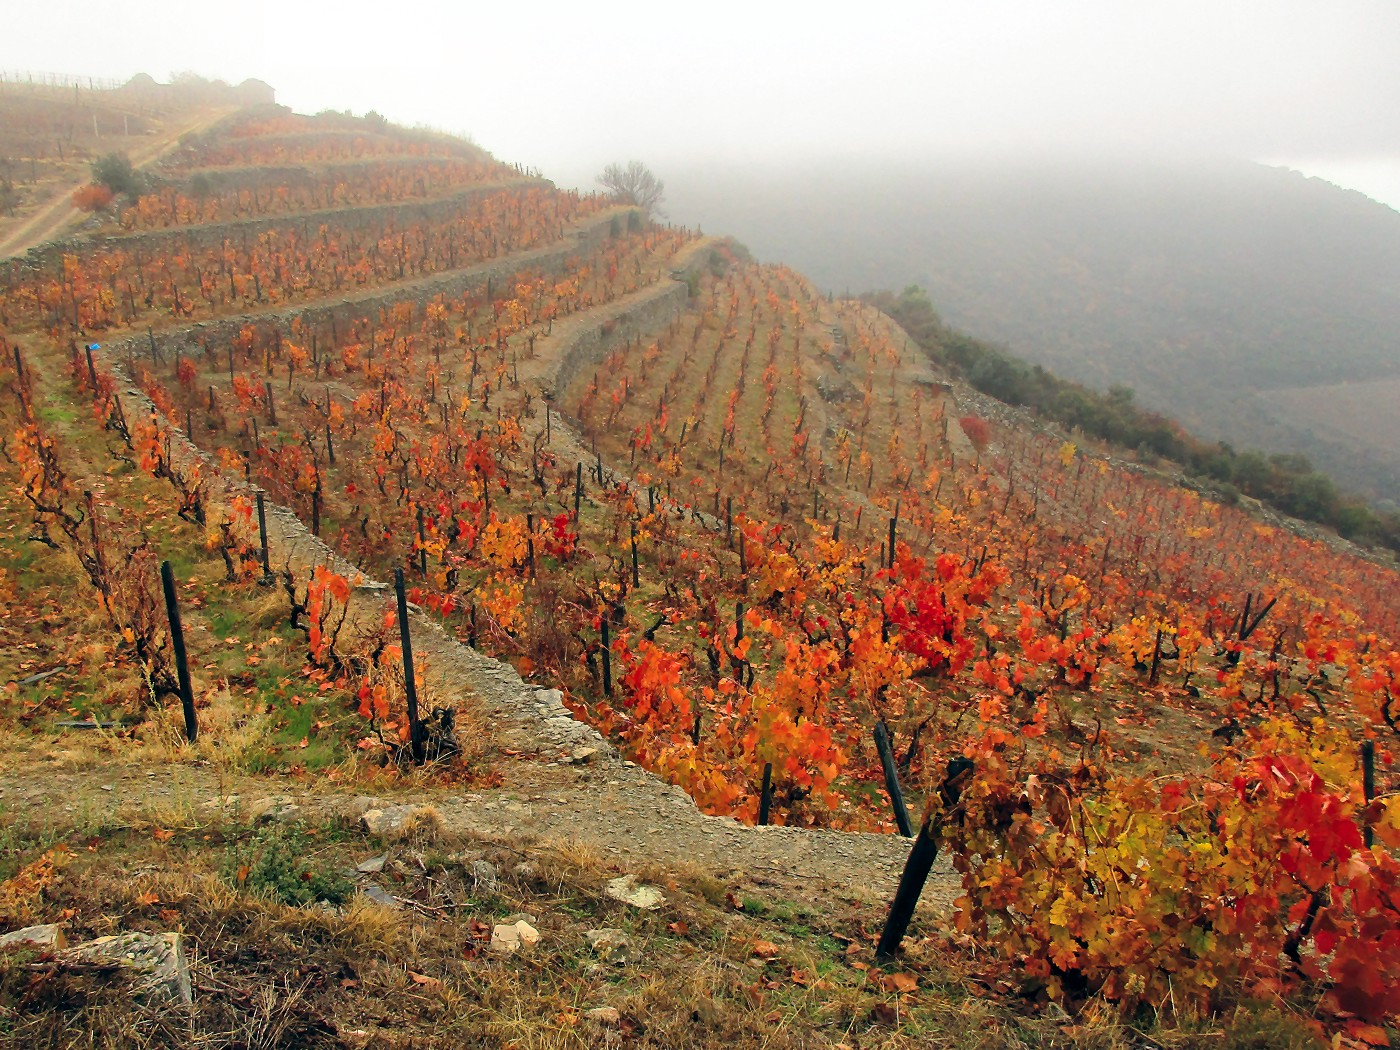 Vineyard in the Douro Valley of Portugal—in the fall.